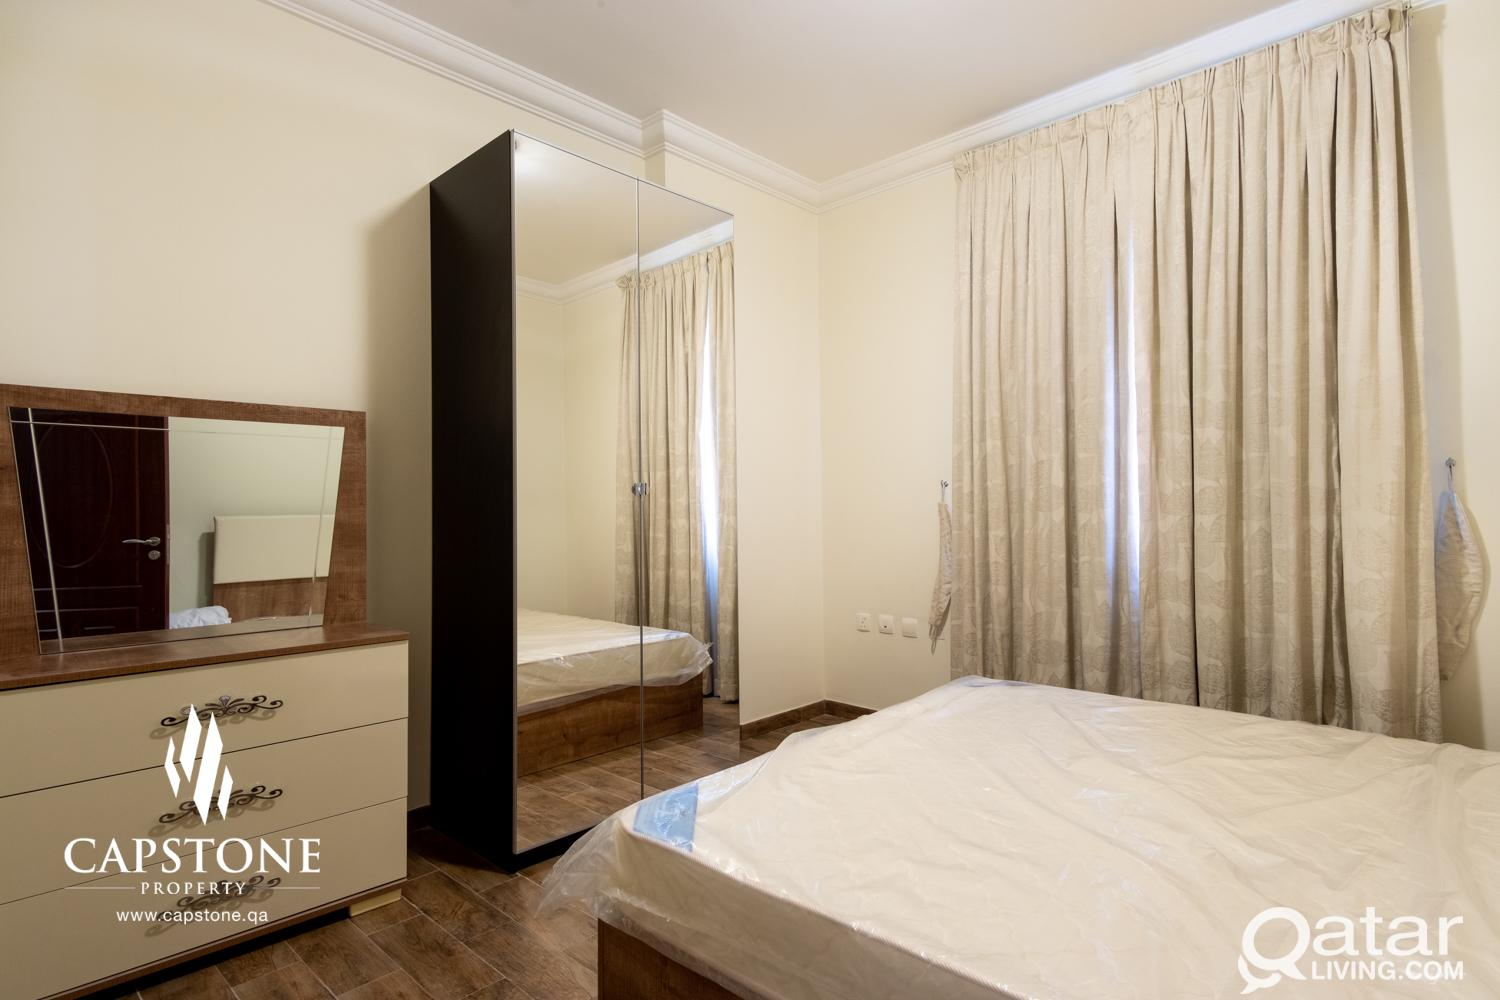 ALL BILLS INCLUDED! NEAR METRO STATION